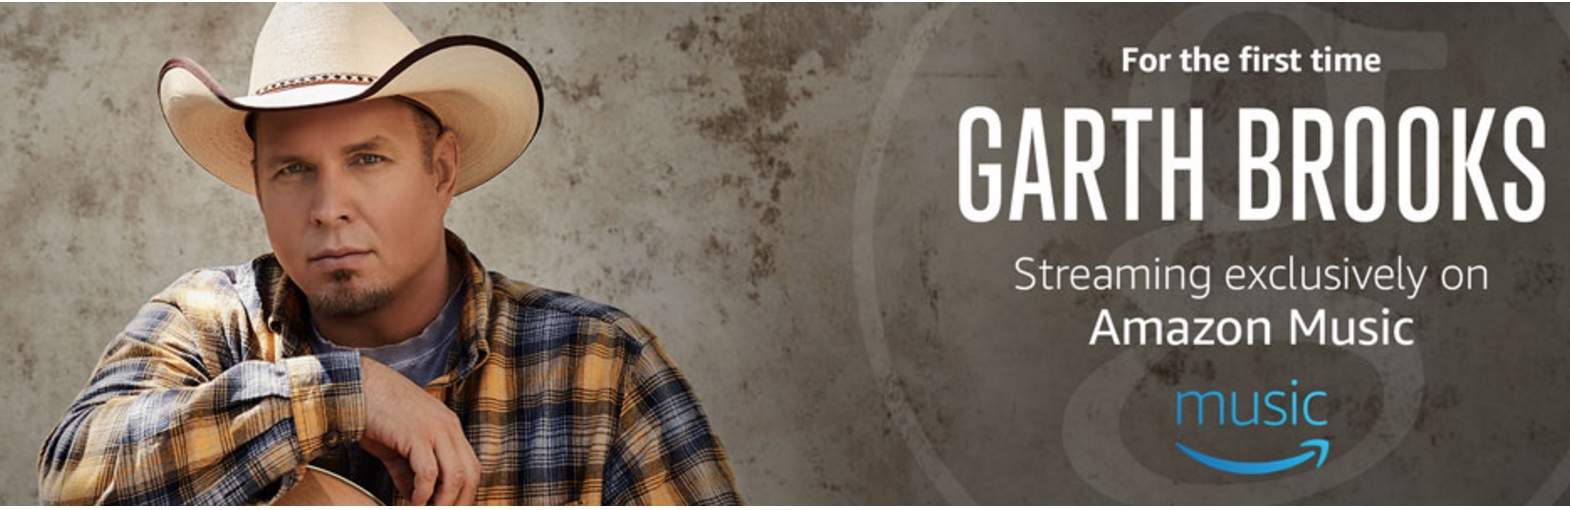 Garth Brooks exclusively on Amazon Music